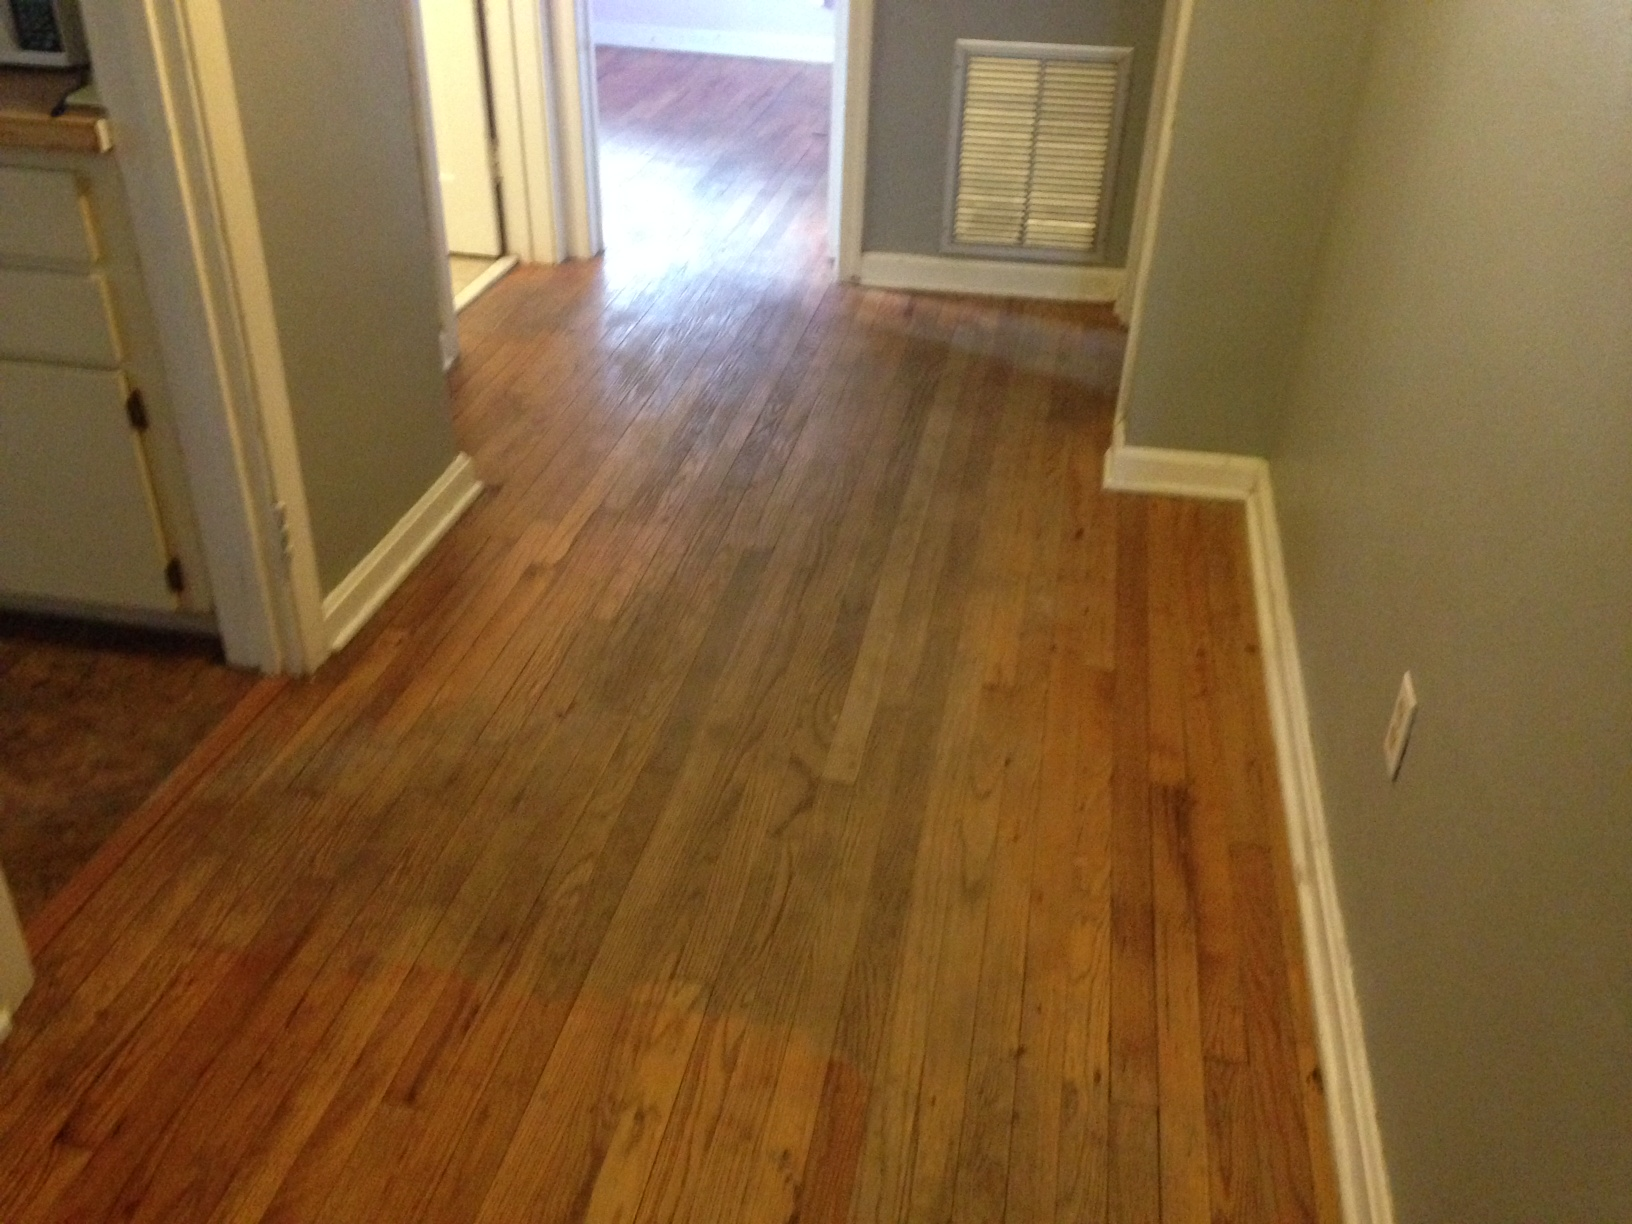 Hardwood floor refinishing jacksonville fl gurus floor for Hardwood floors jacksonville fl